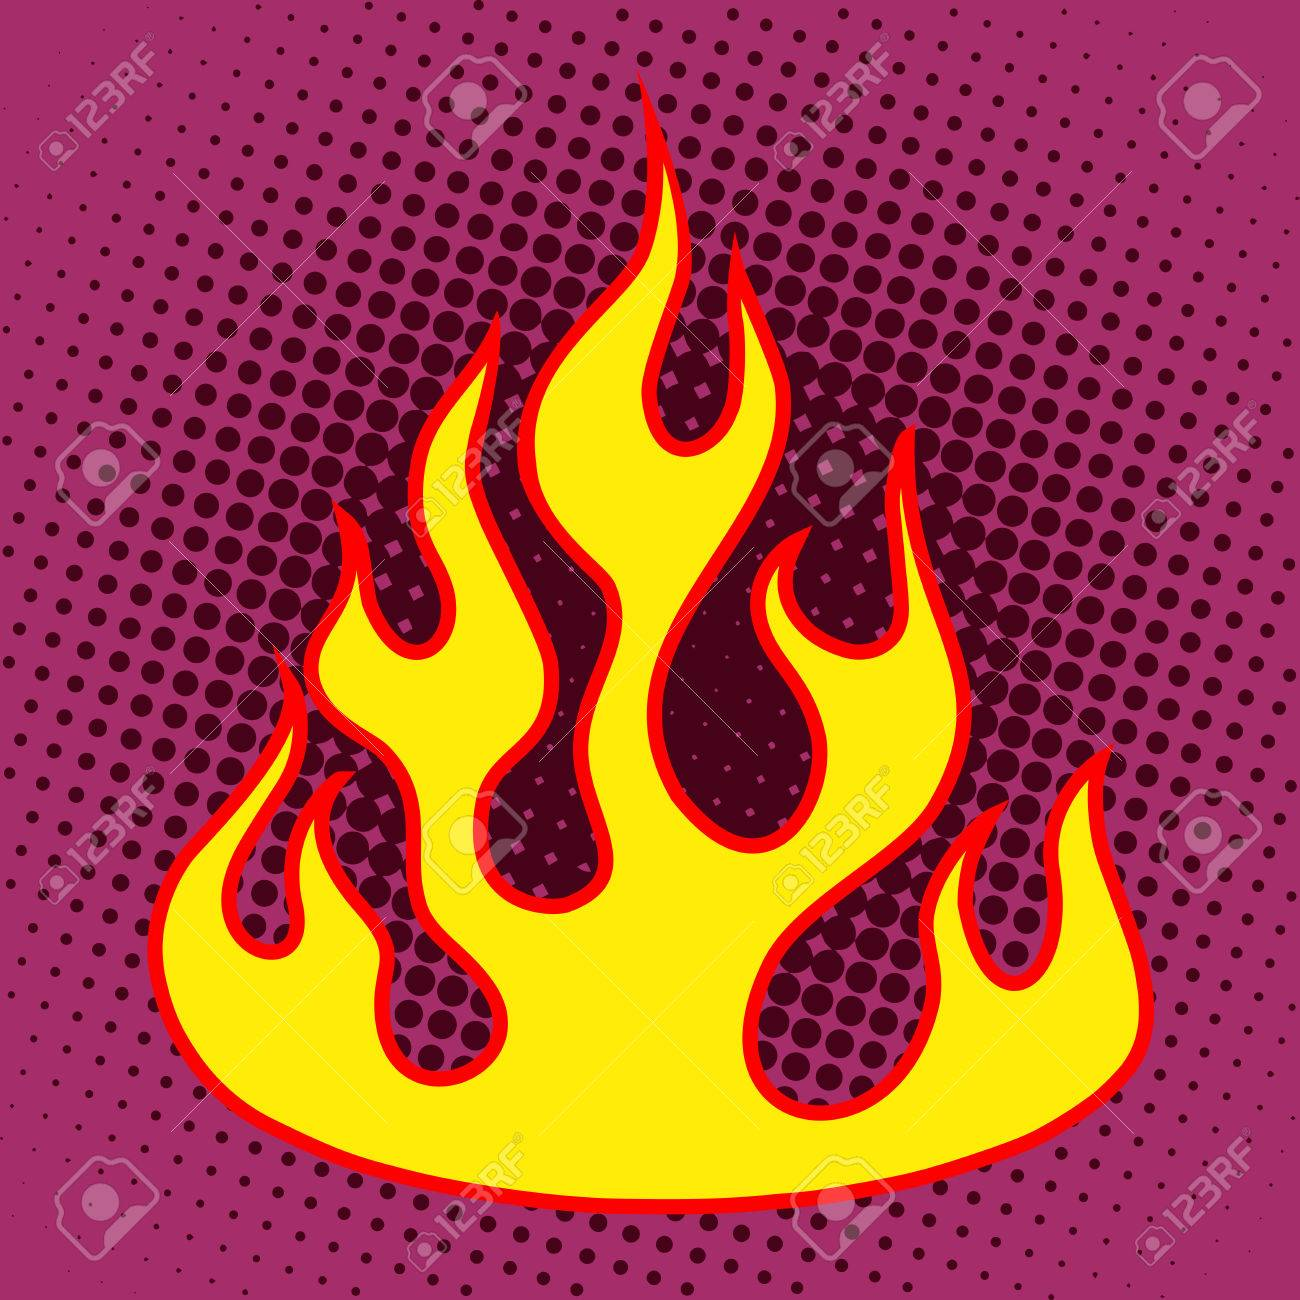 hight resolution of flame retro silhouette pop art style fire heat energy hot stock vector 48470557